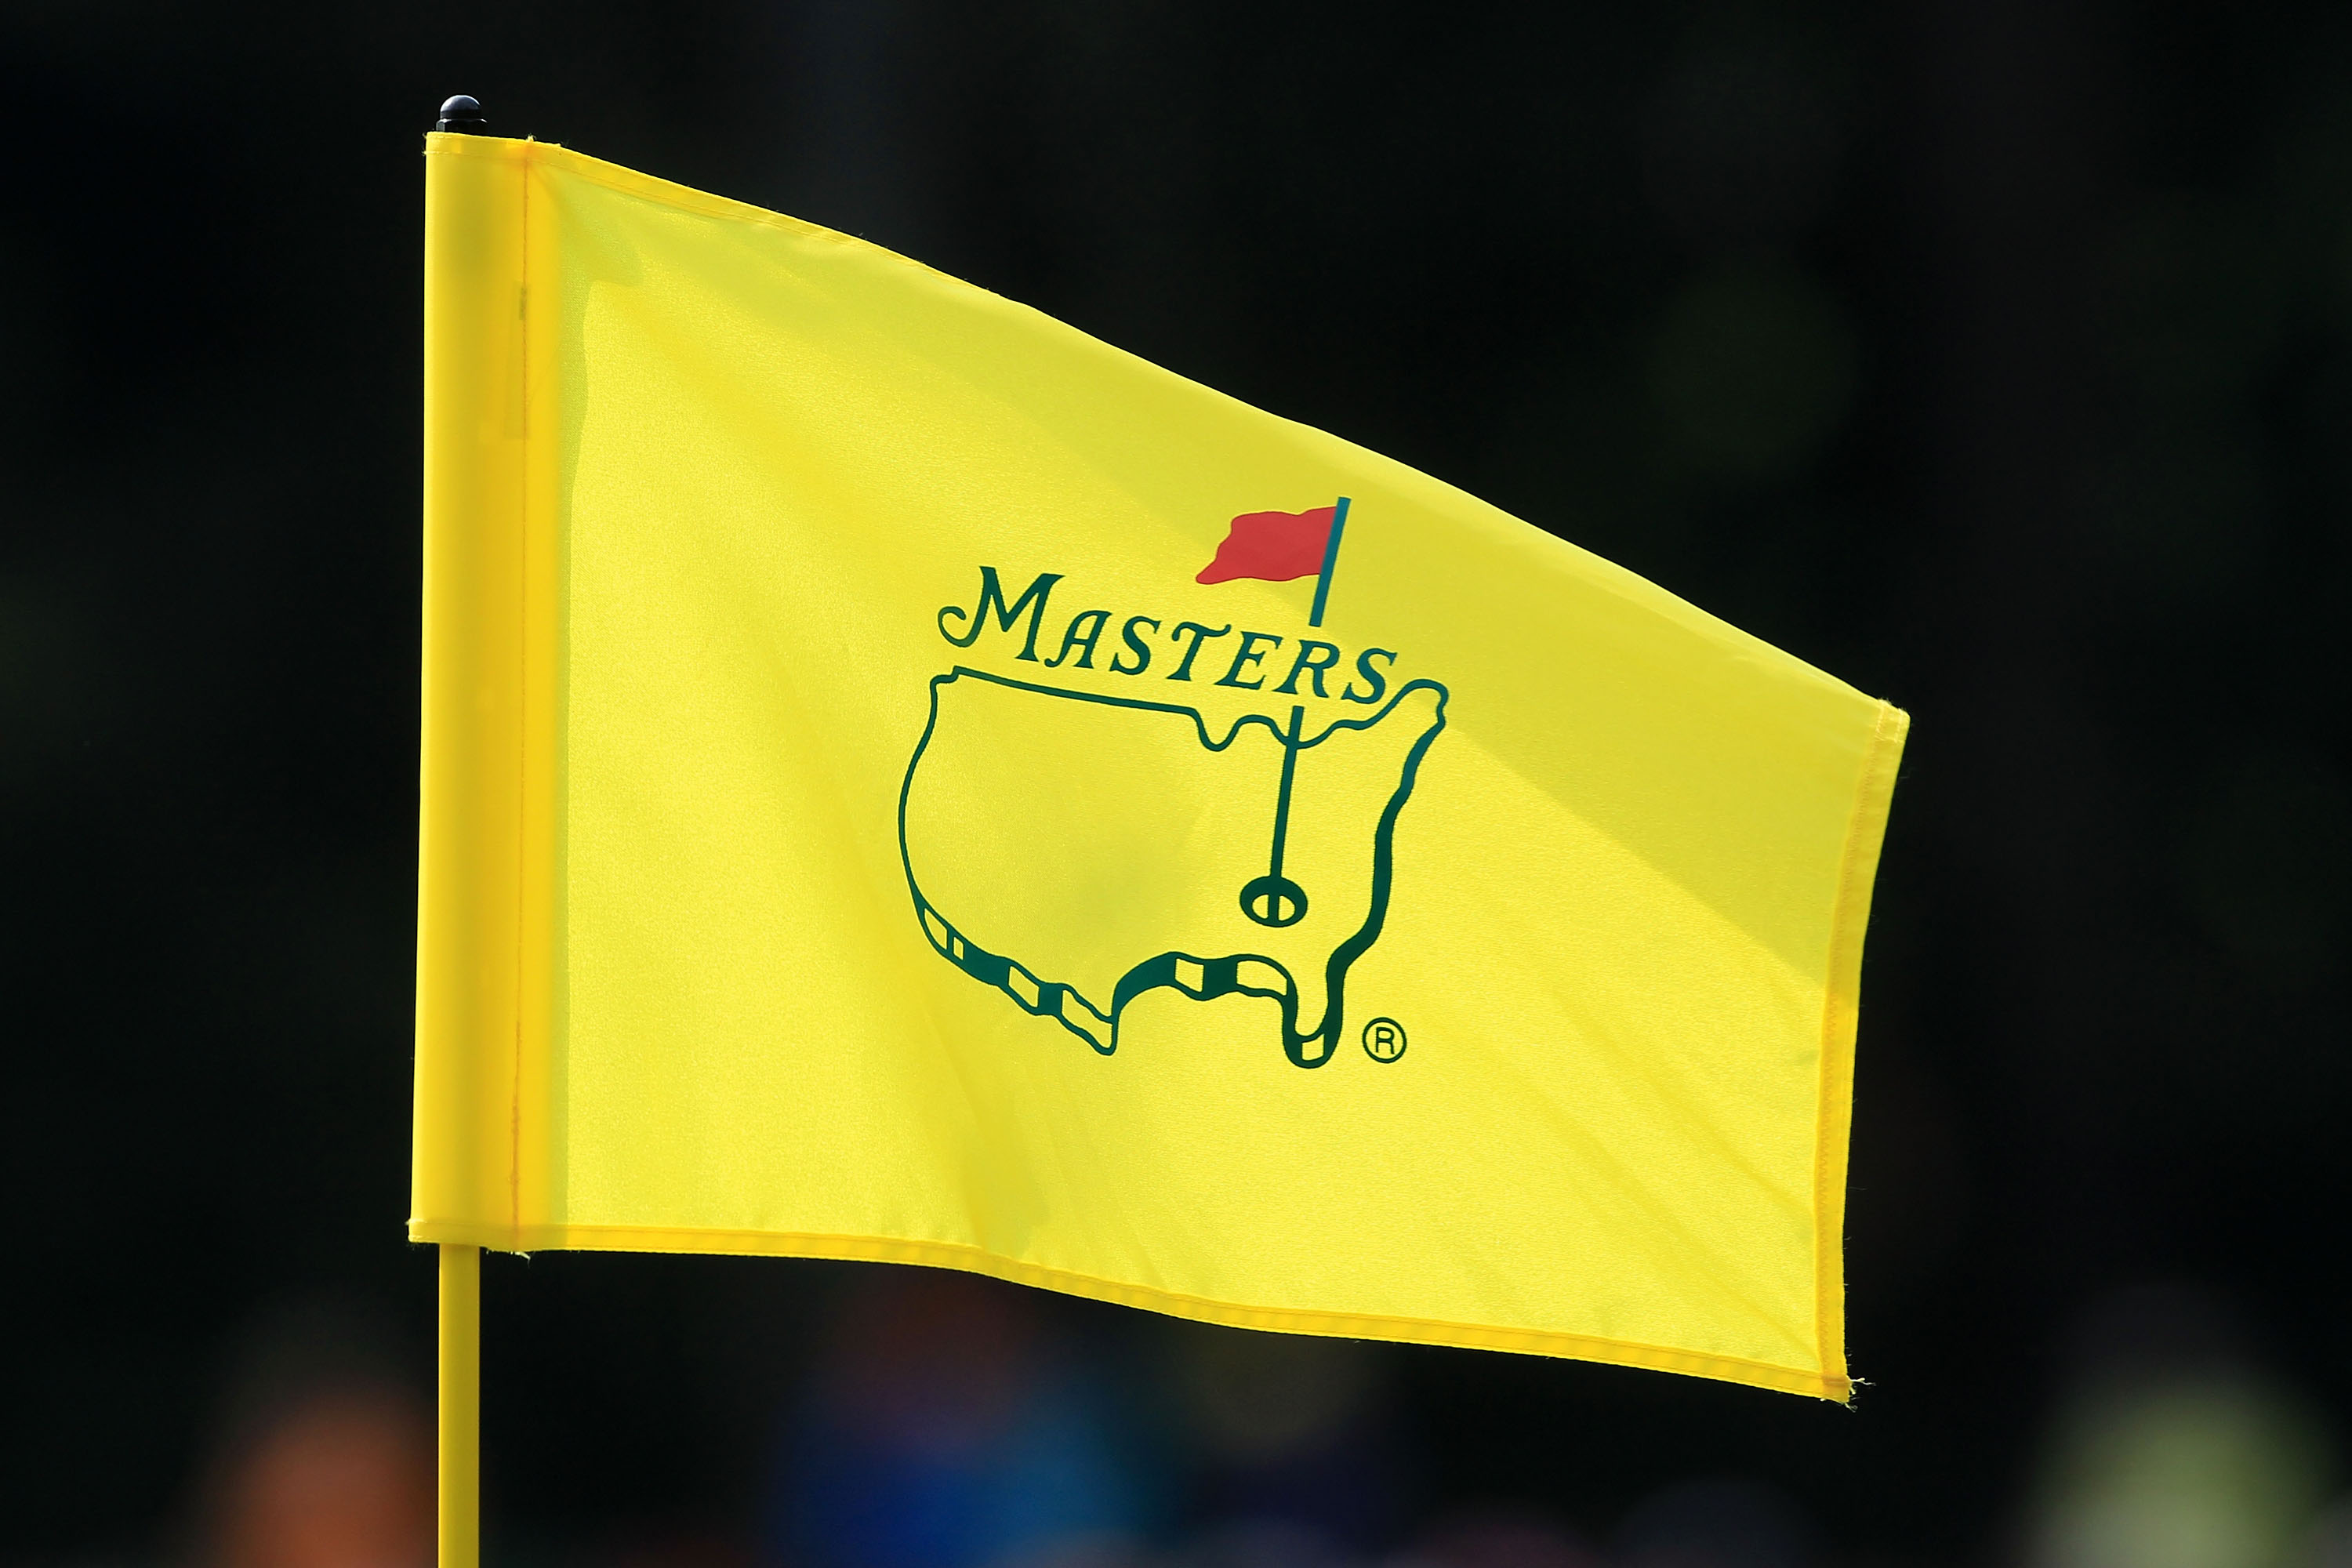 Why Is the US Map on the Masters Logo So Wrong New Republic